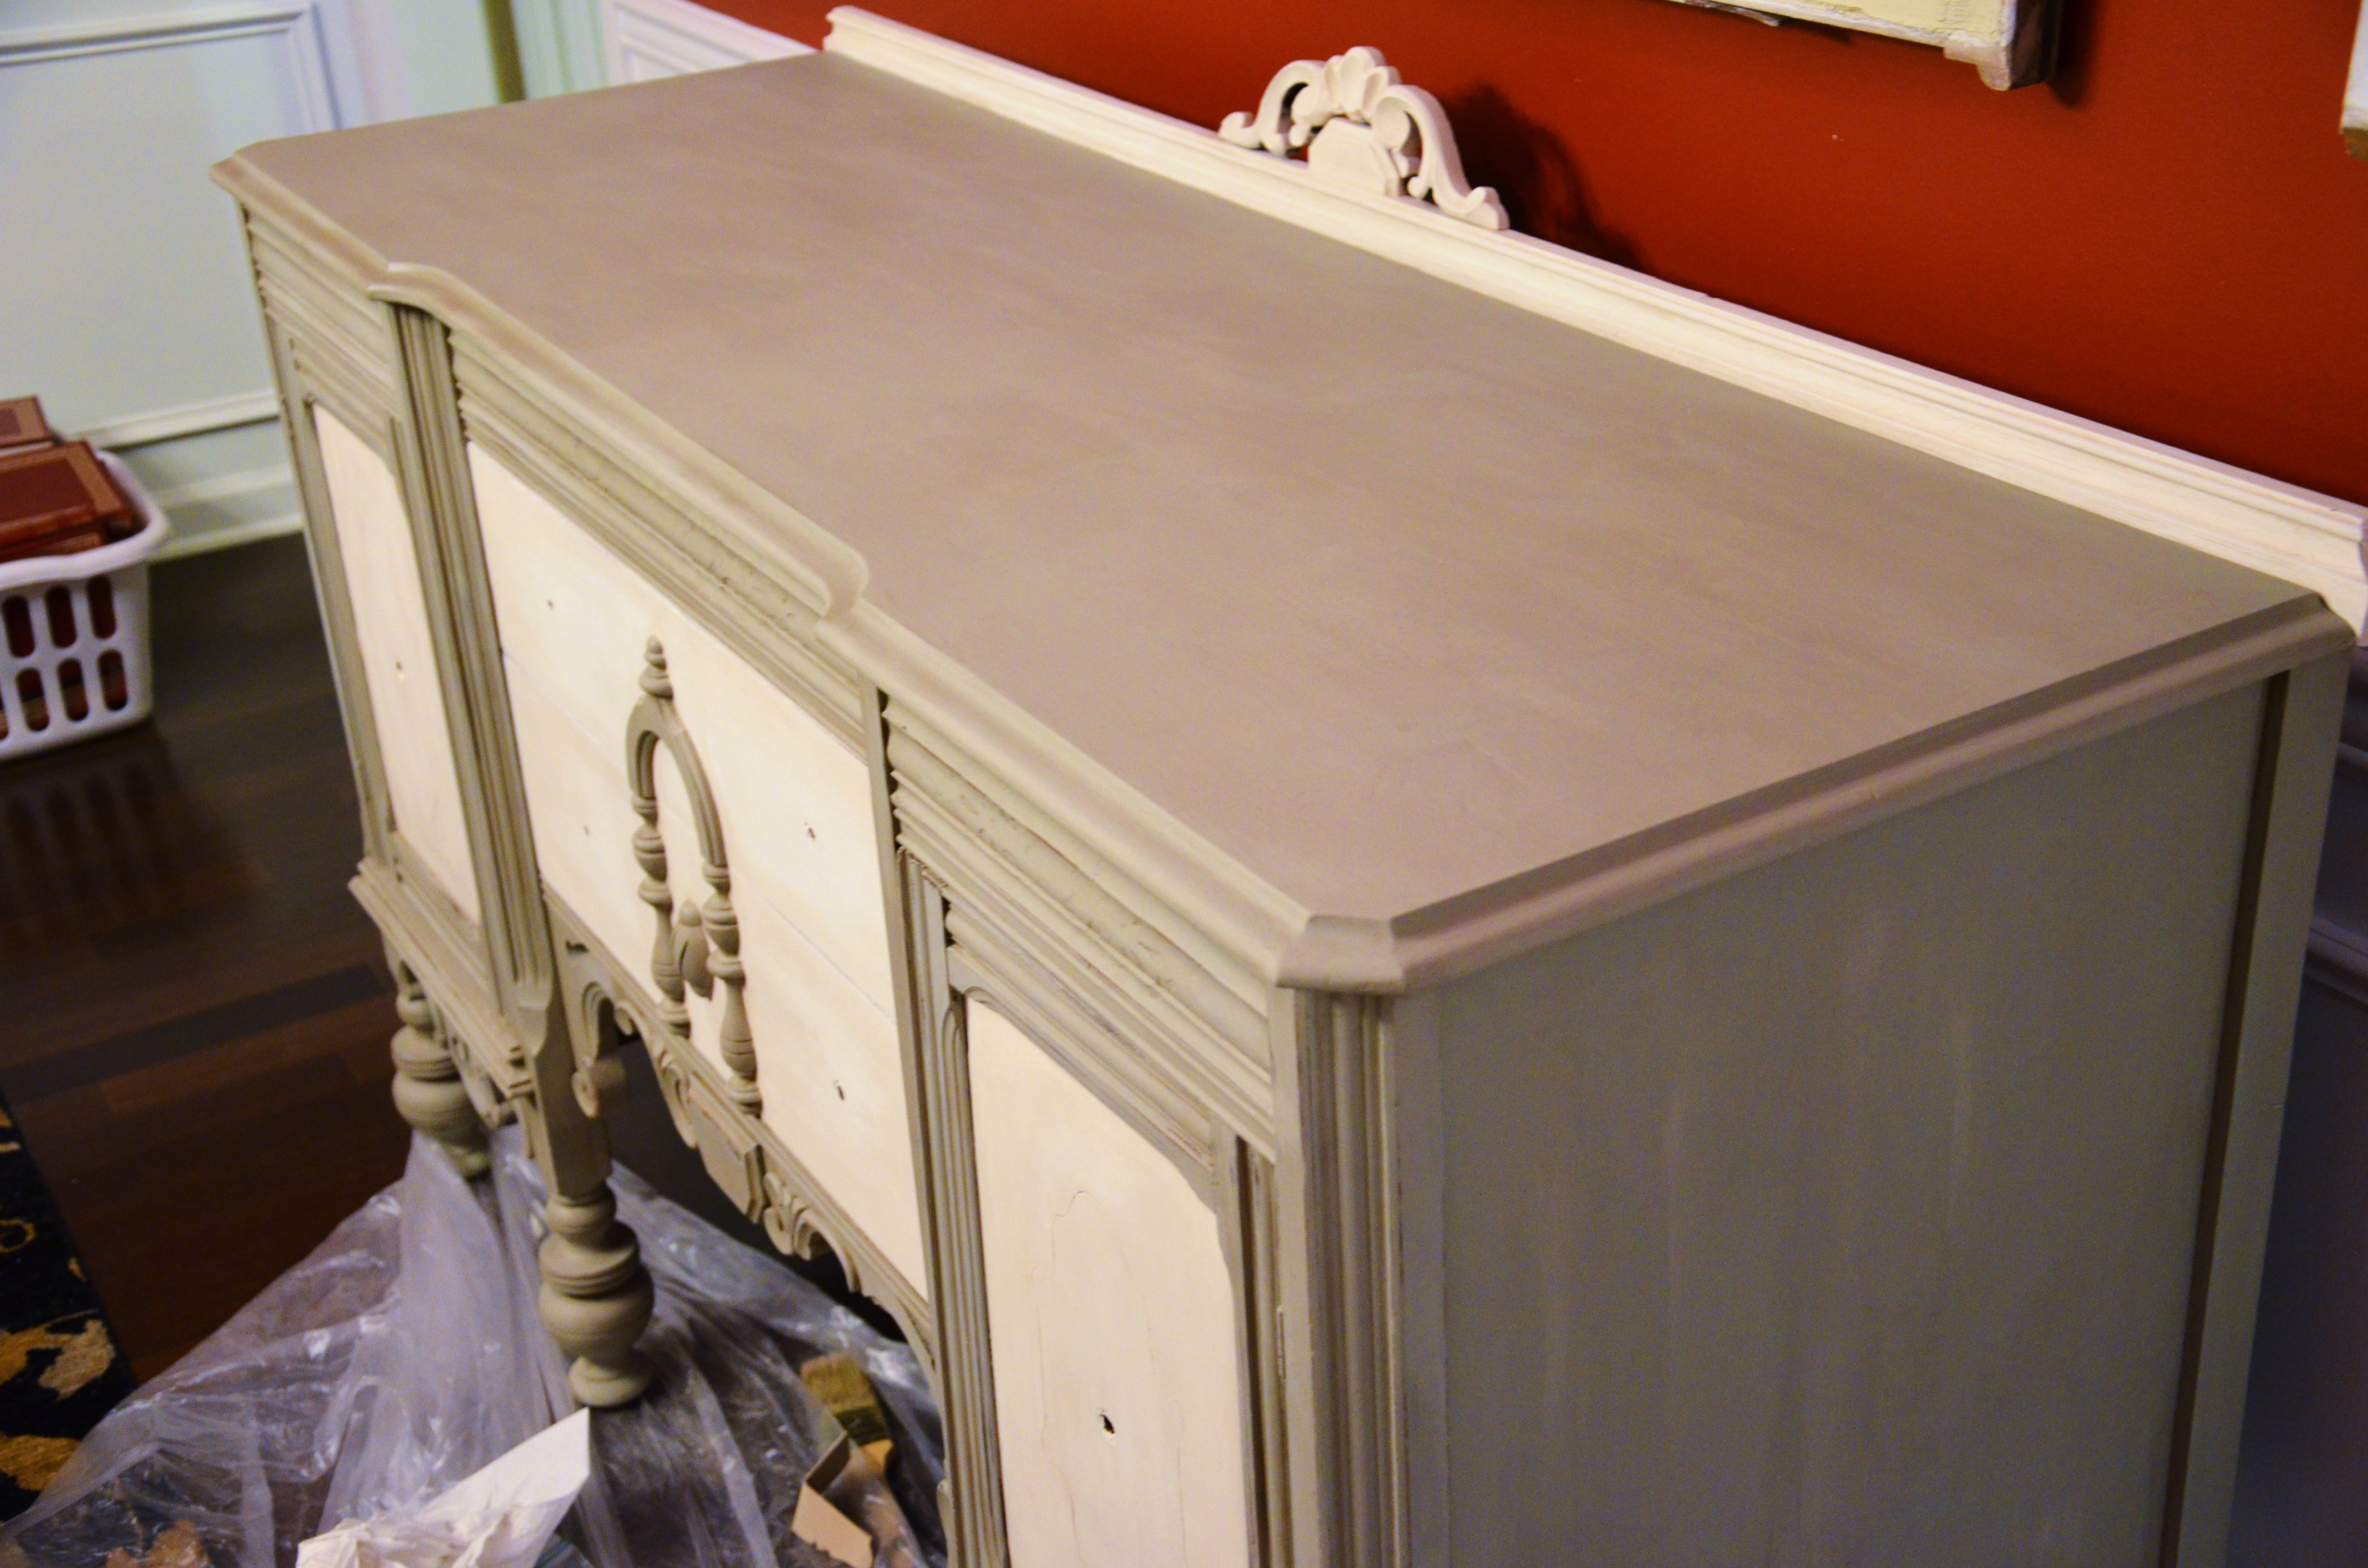 The main color is Maison Blanche Furniture